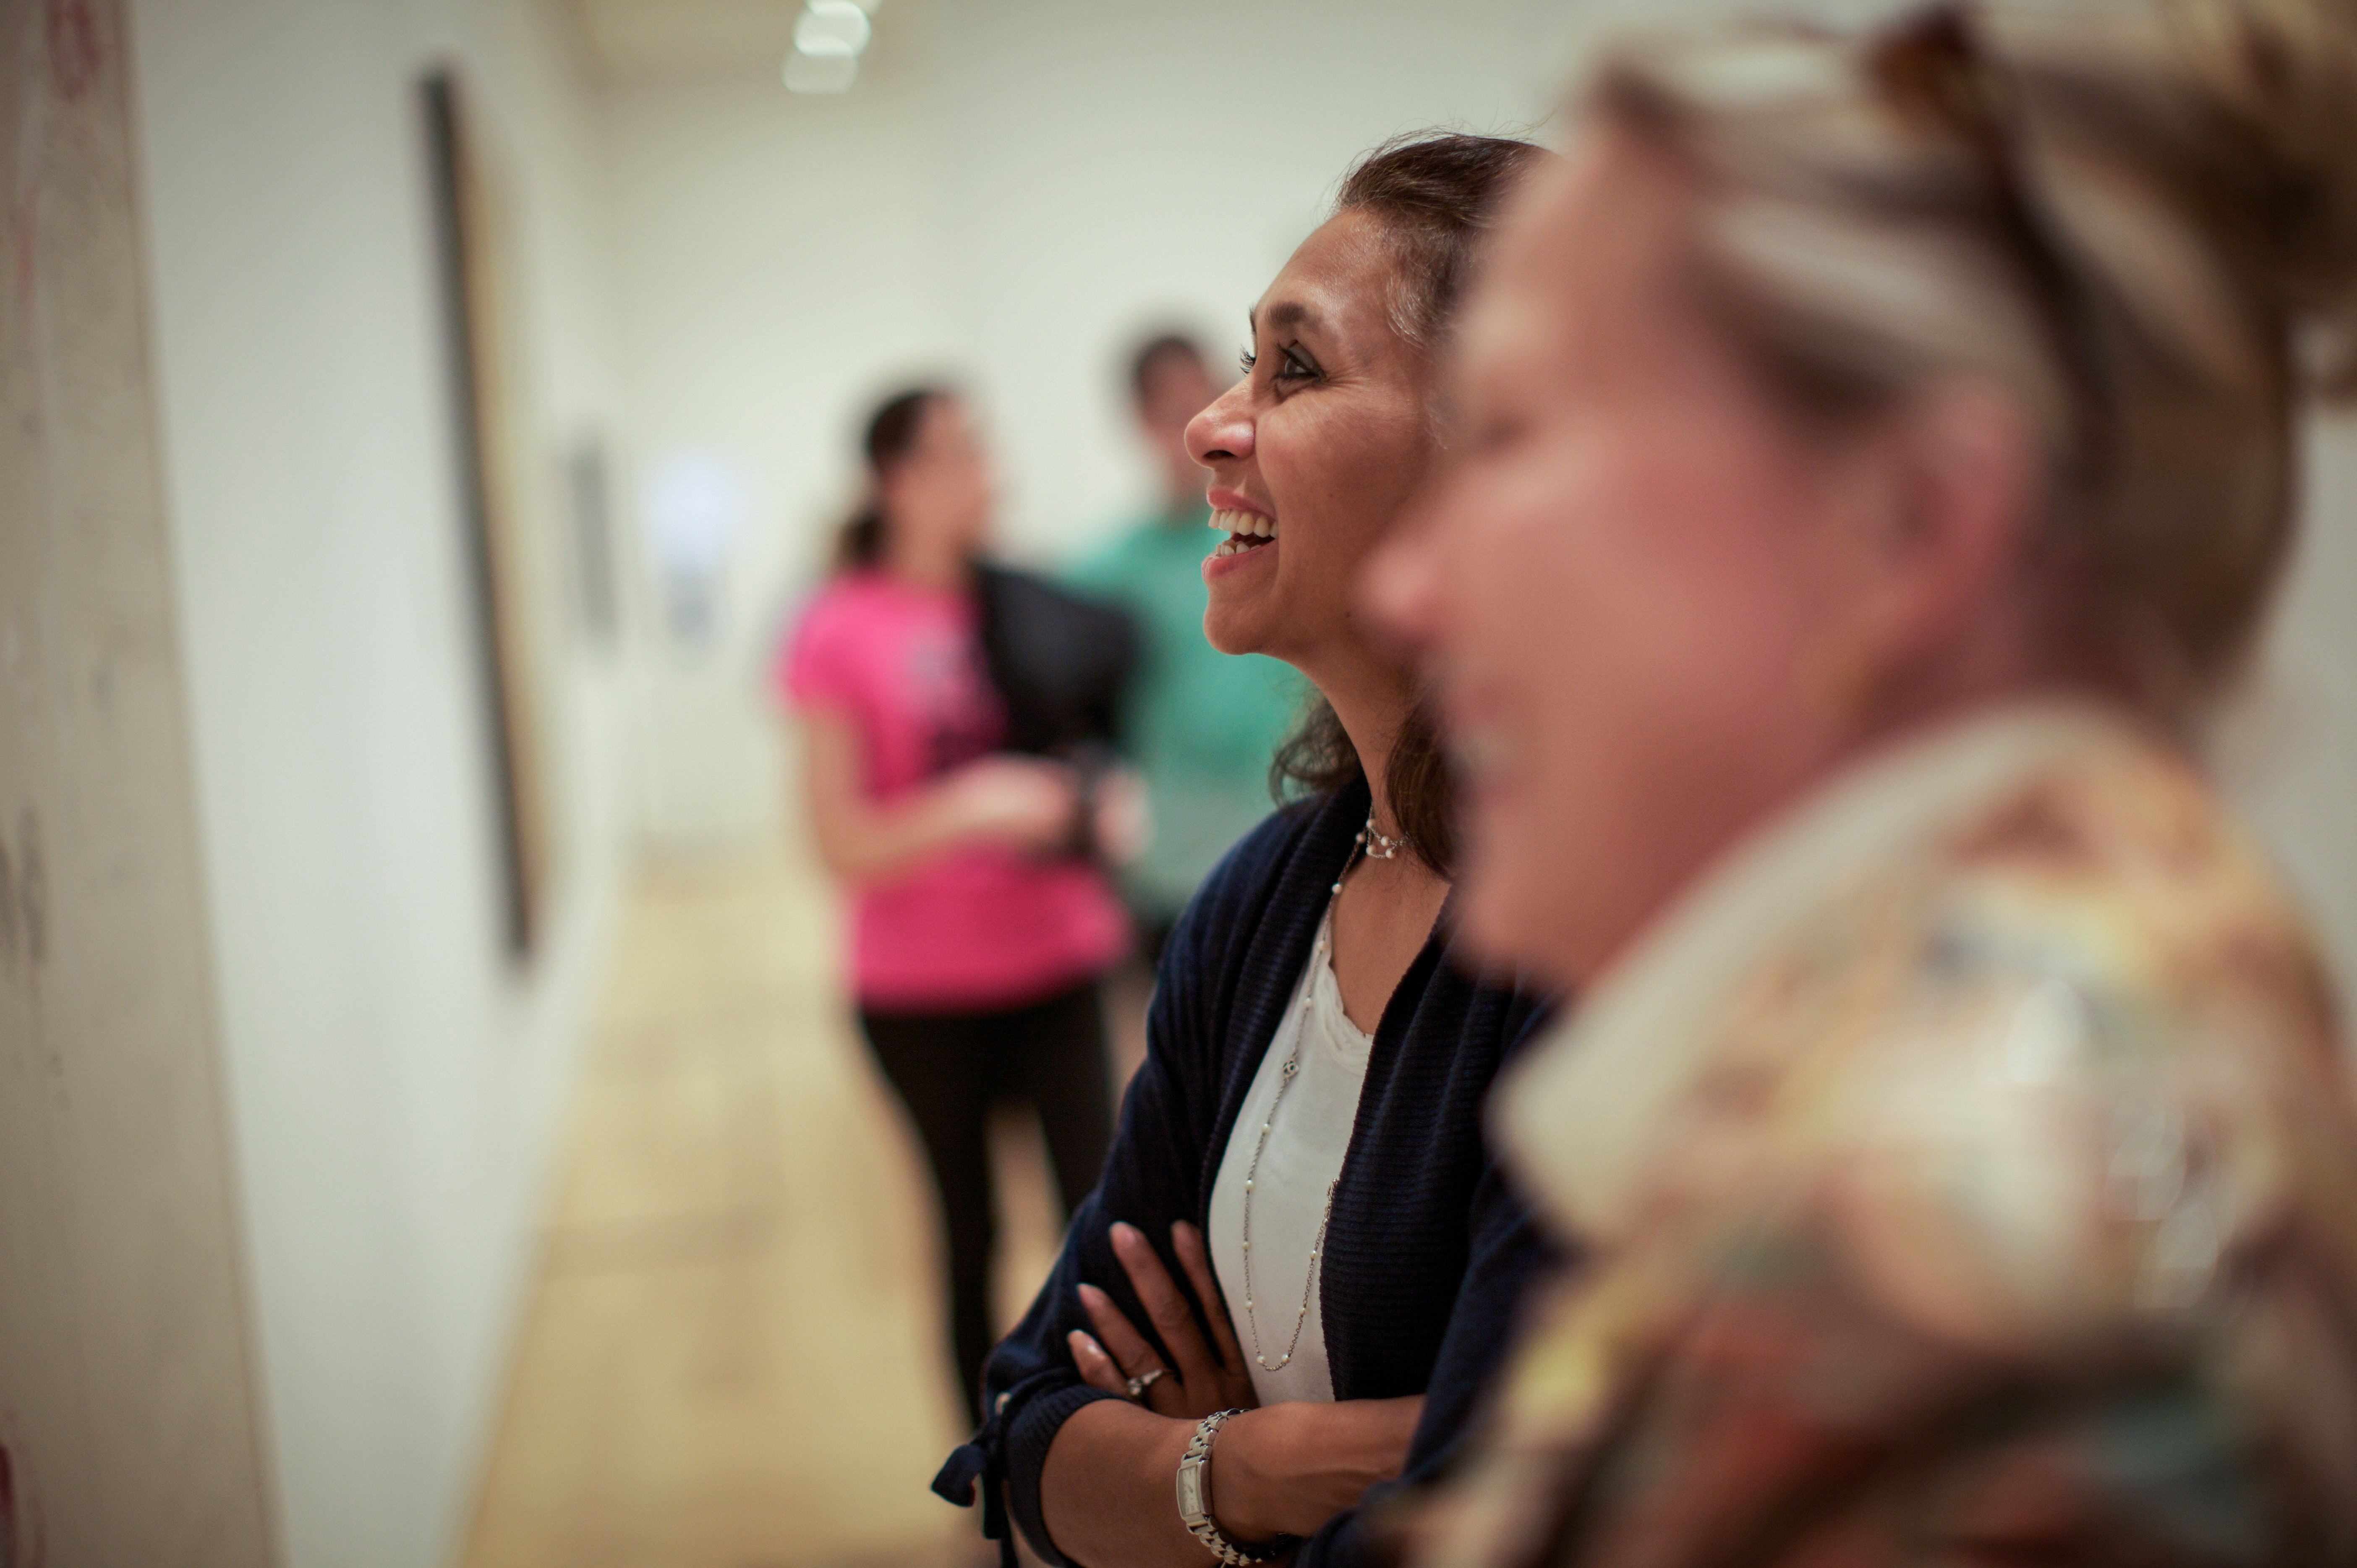 Two women stand in a gallery looking at art